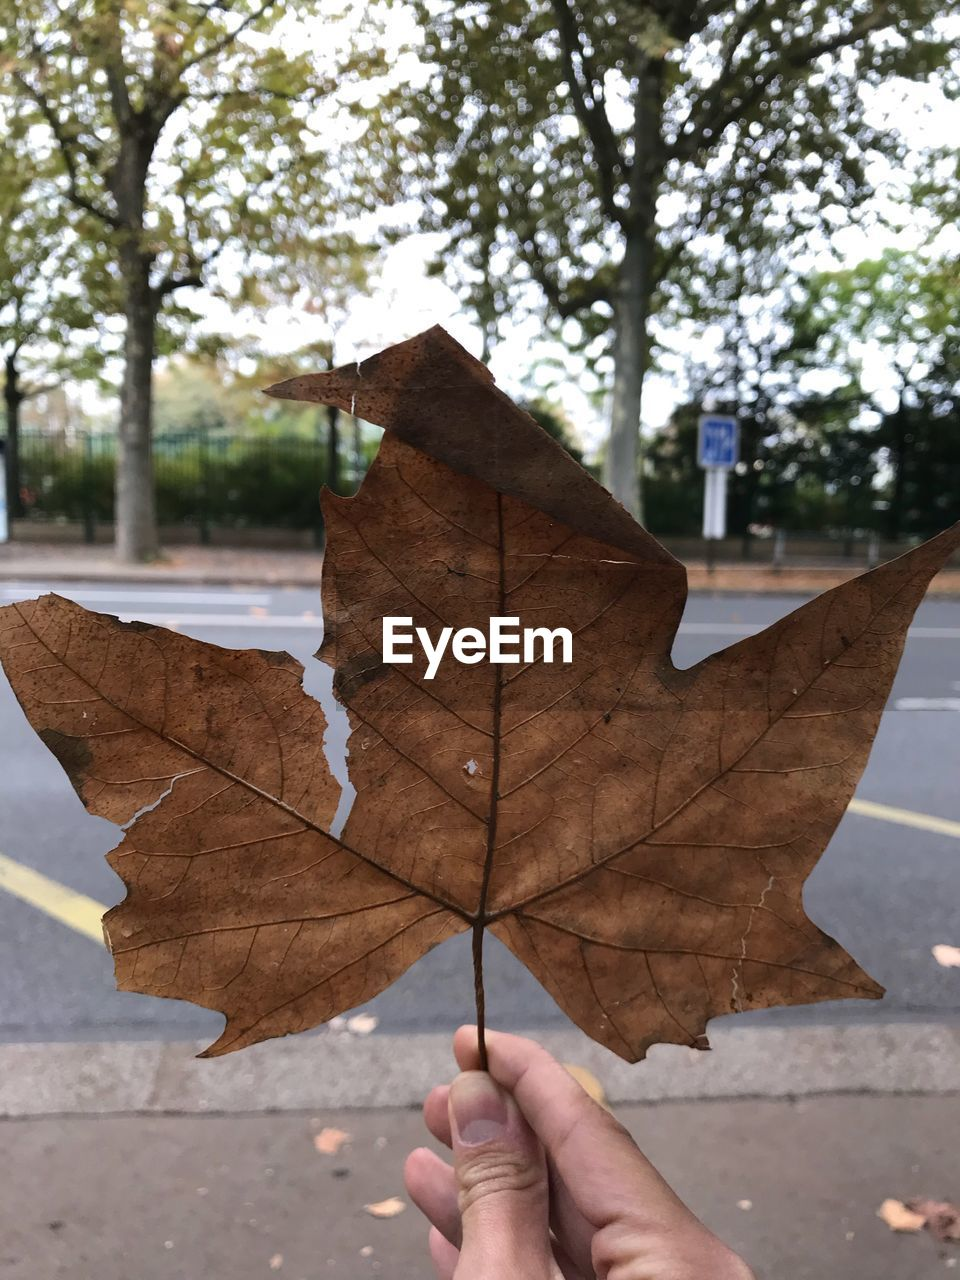 leaf, autumn, change, dry, outdoors, one person, nature, day, real people, close-up, weather, holding, maple leaf, focus on foreground, tree, maple, fragility, human hand, beauty in nature, human body part